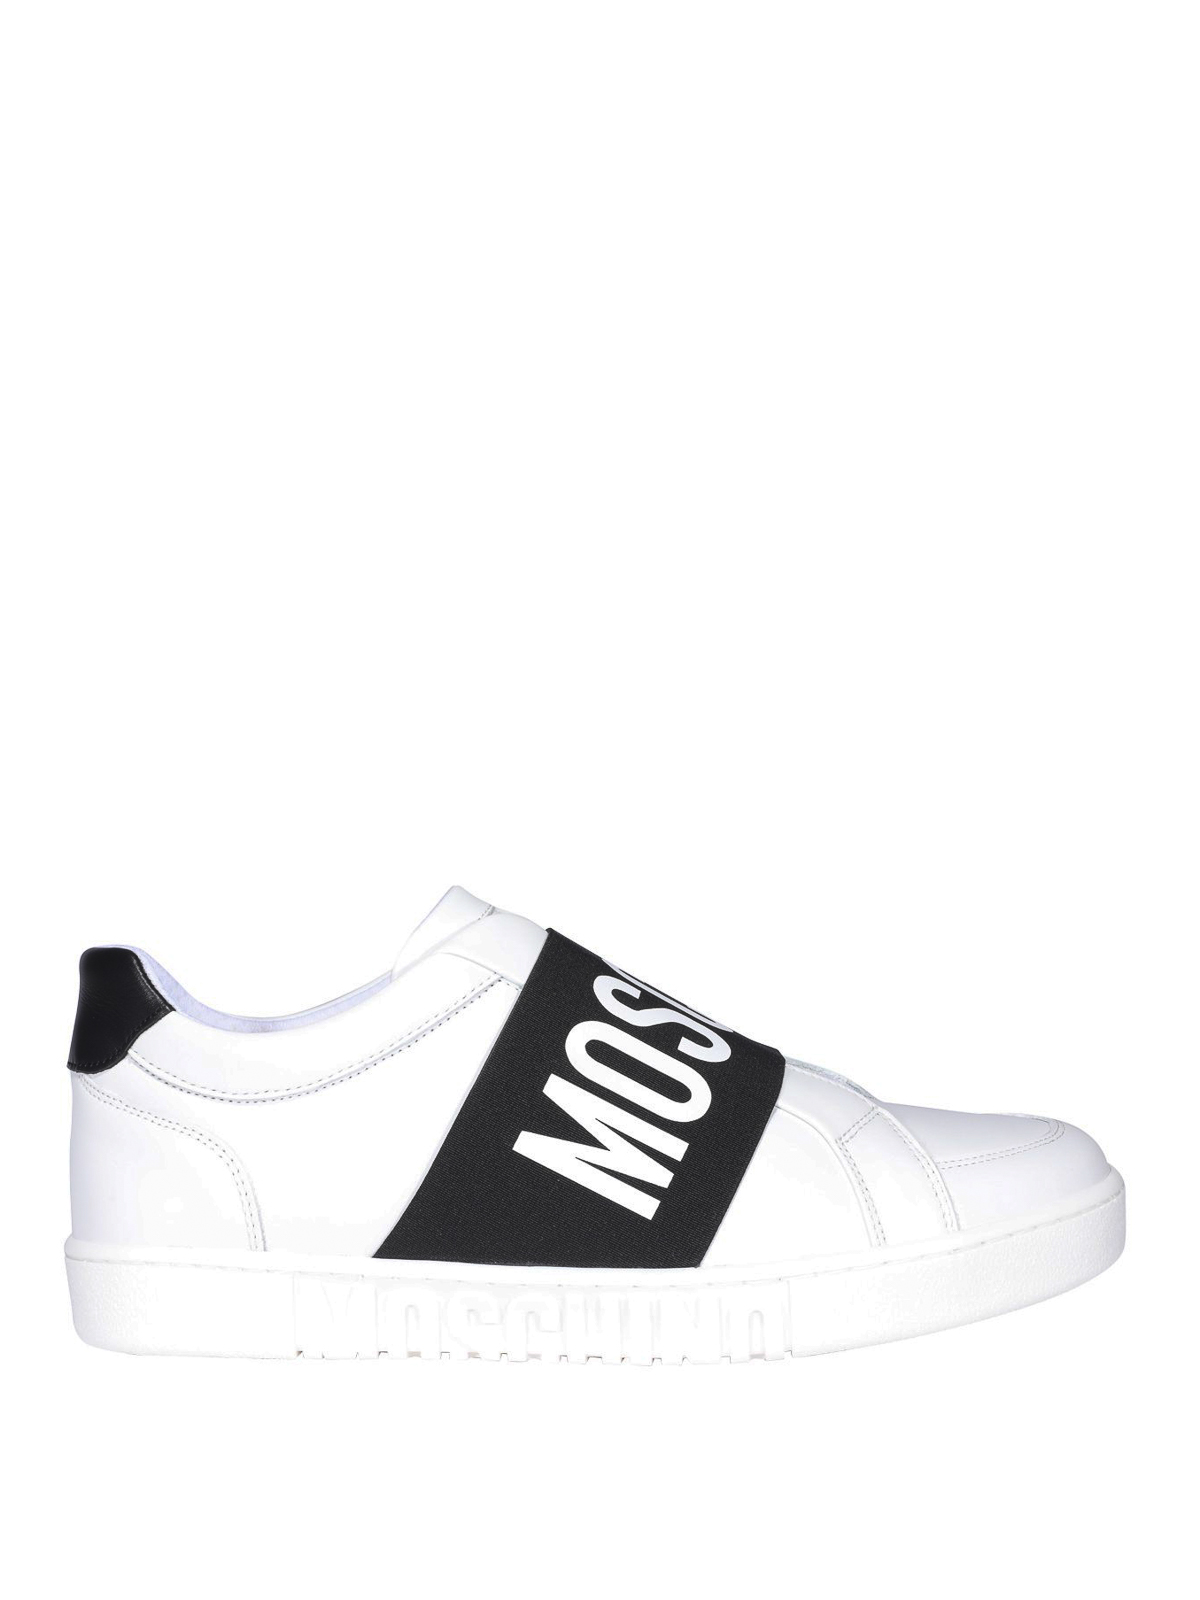 Moschino Sneakers WHITE LEATHER SNEAKERS